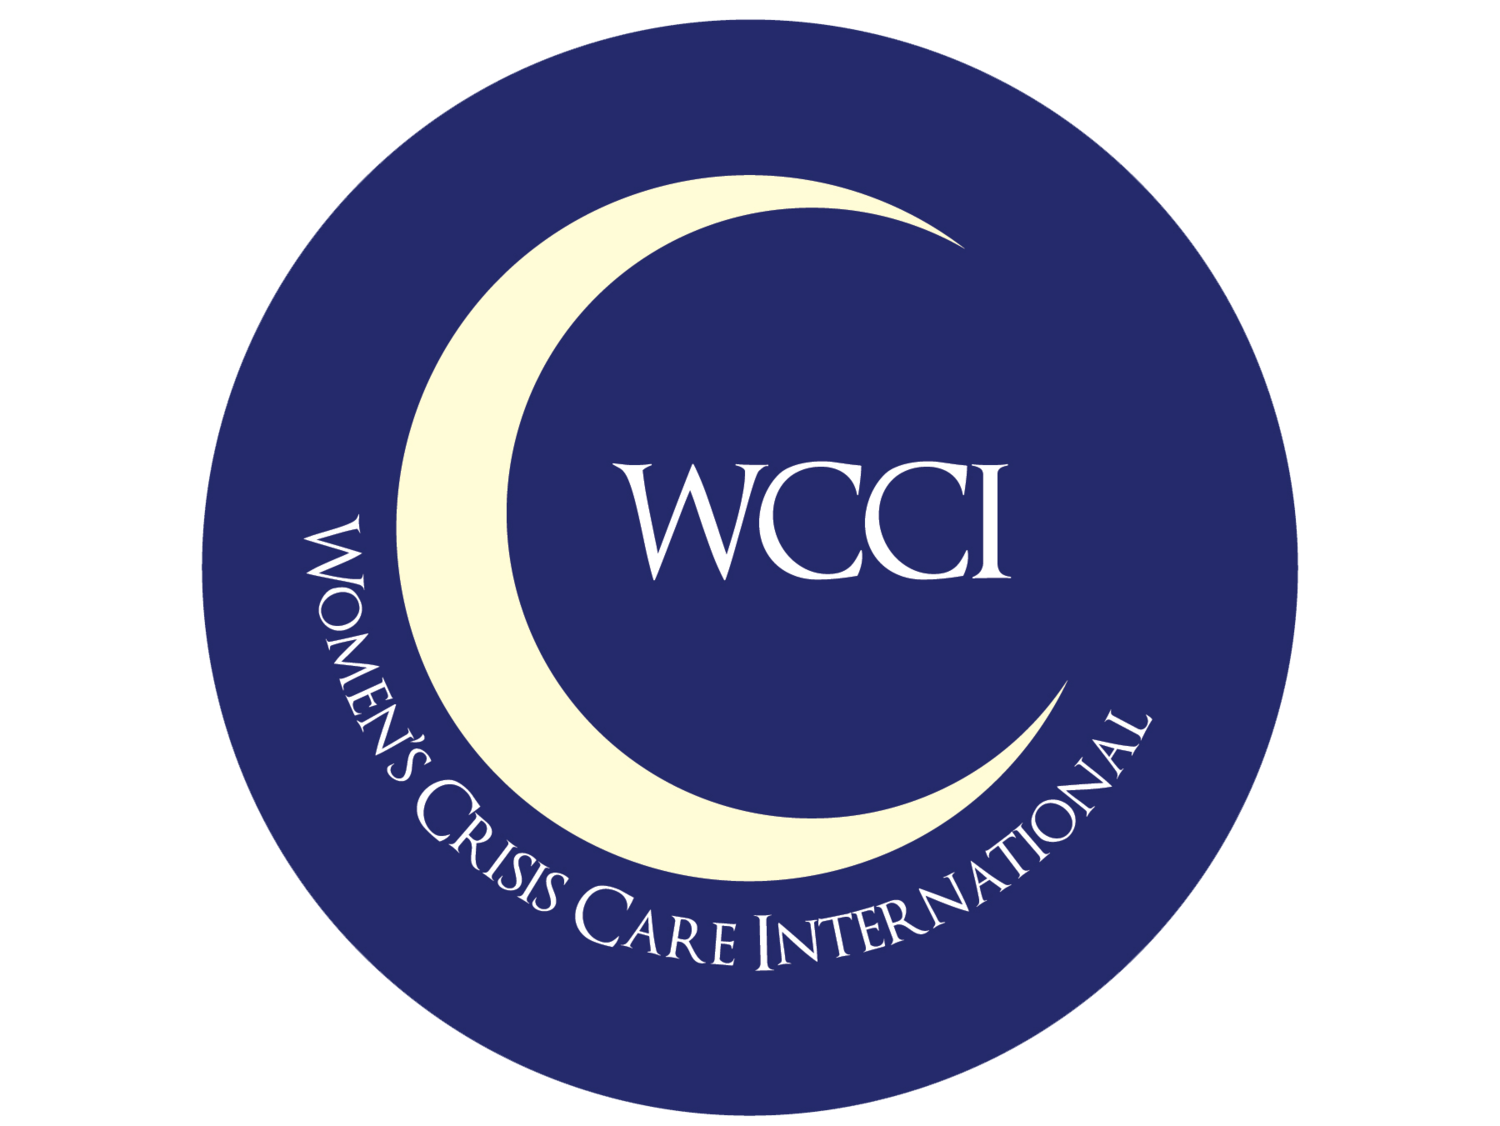 Women's Crisis Care International